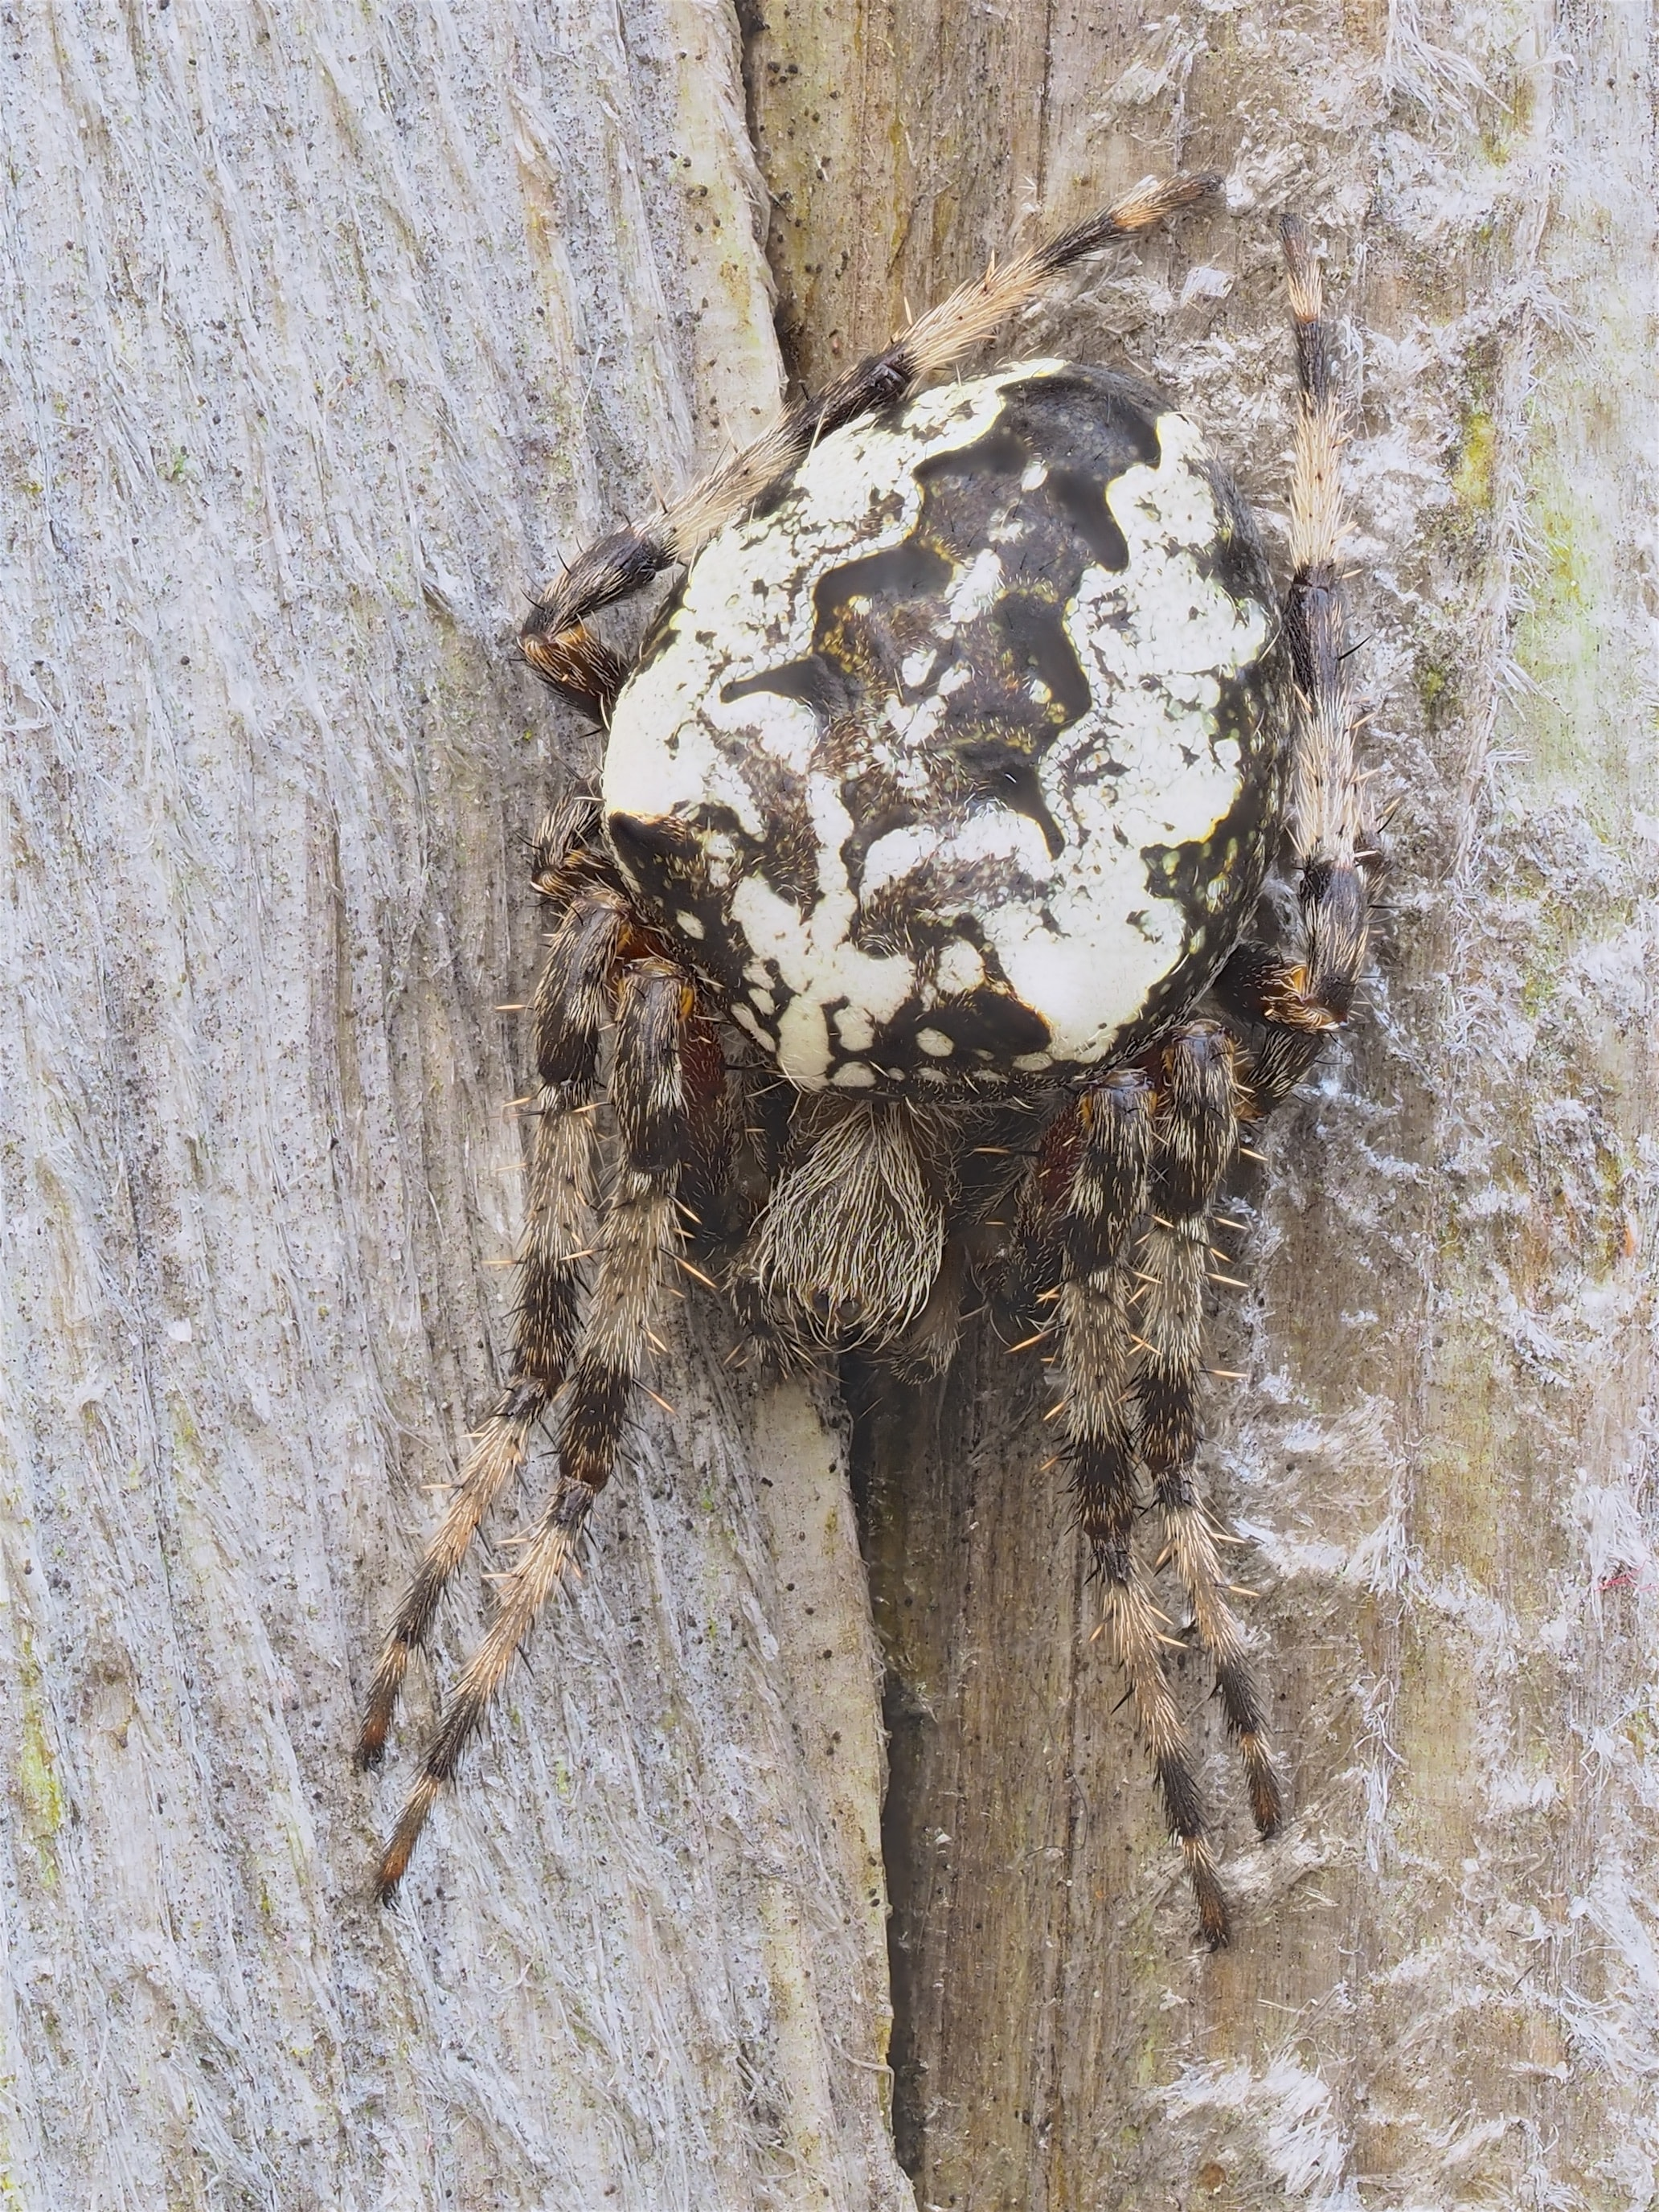 Picture of Araneus nordmanni - Female - Dorsal